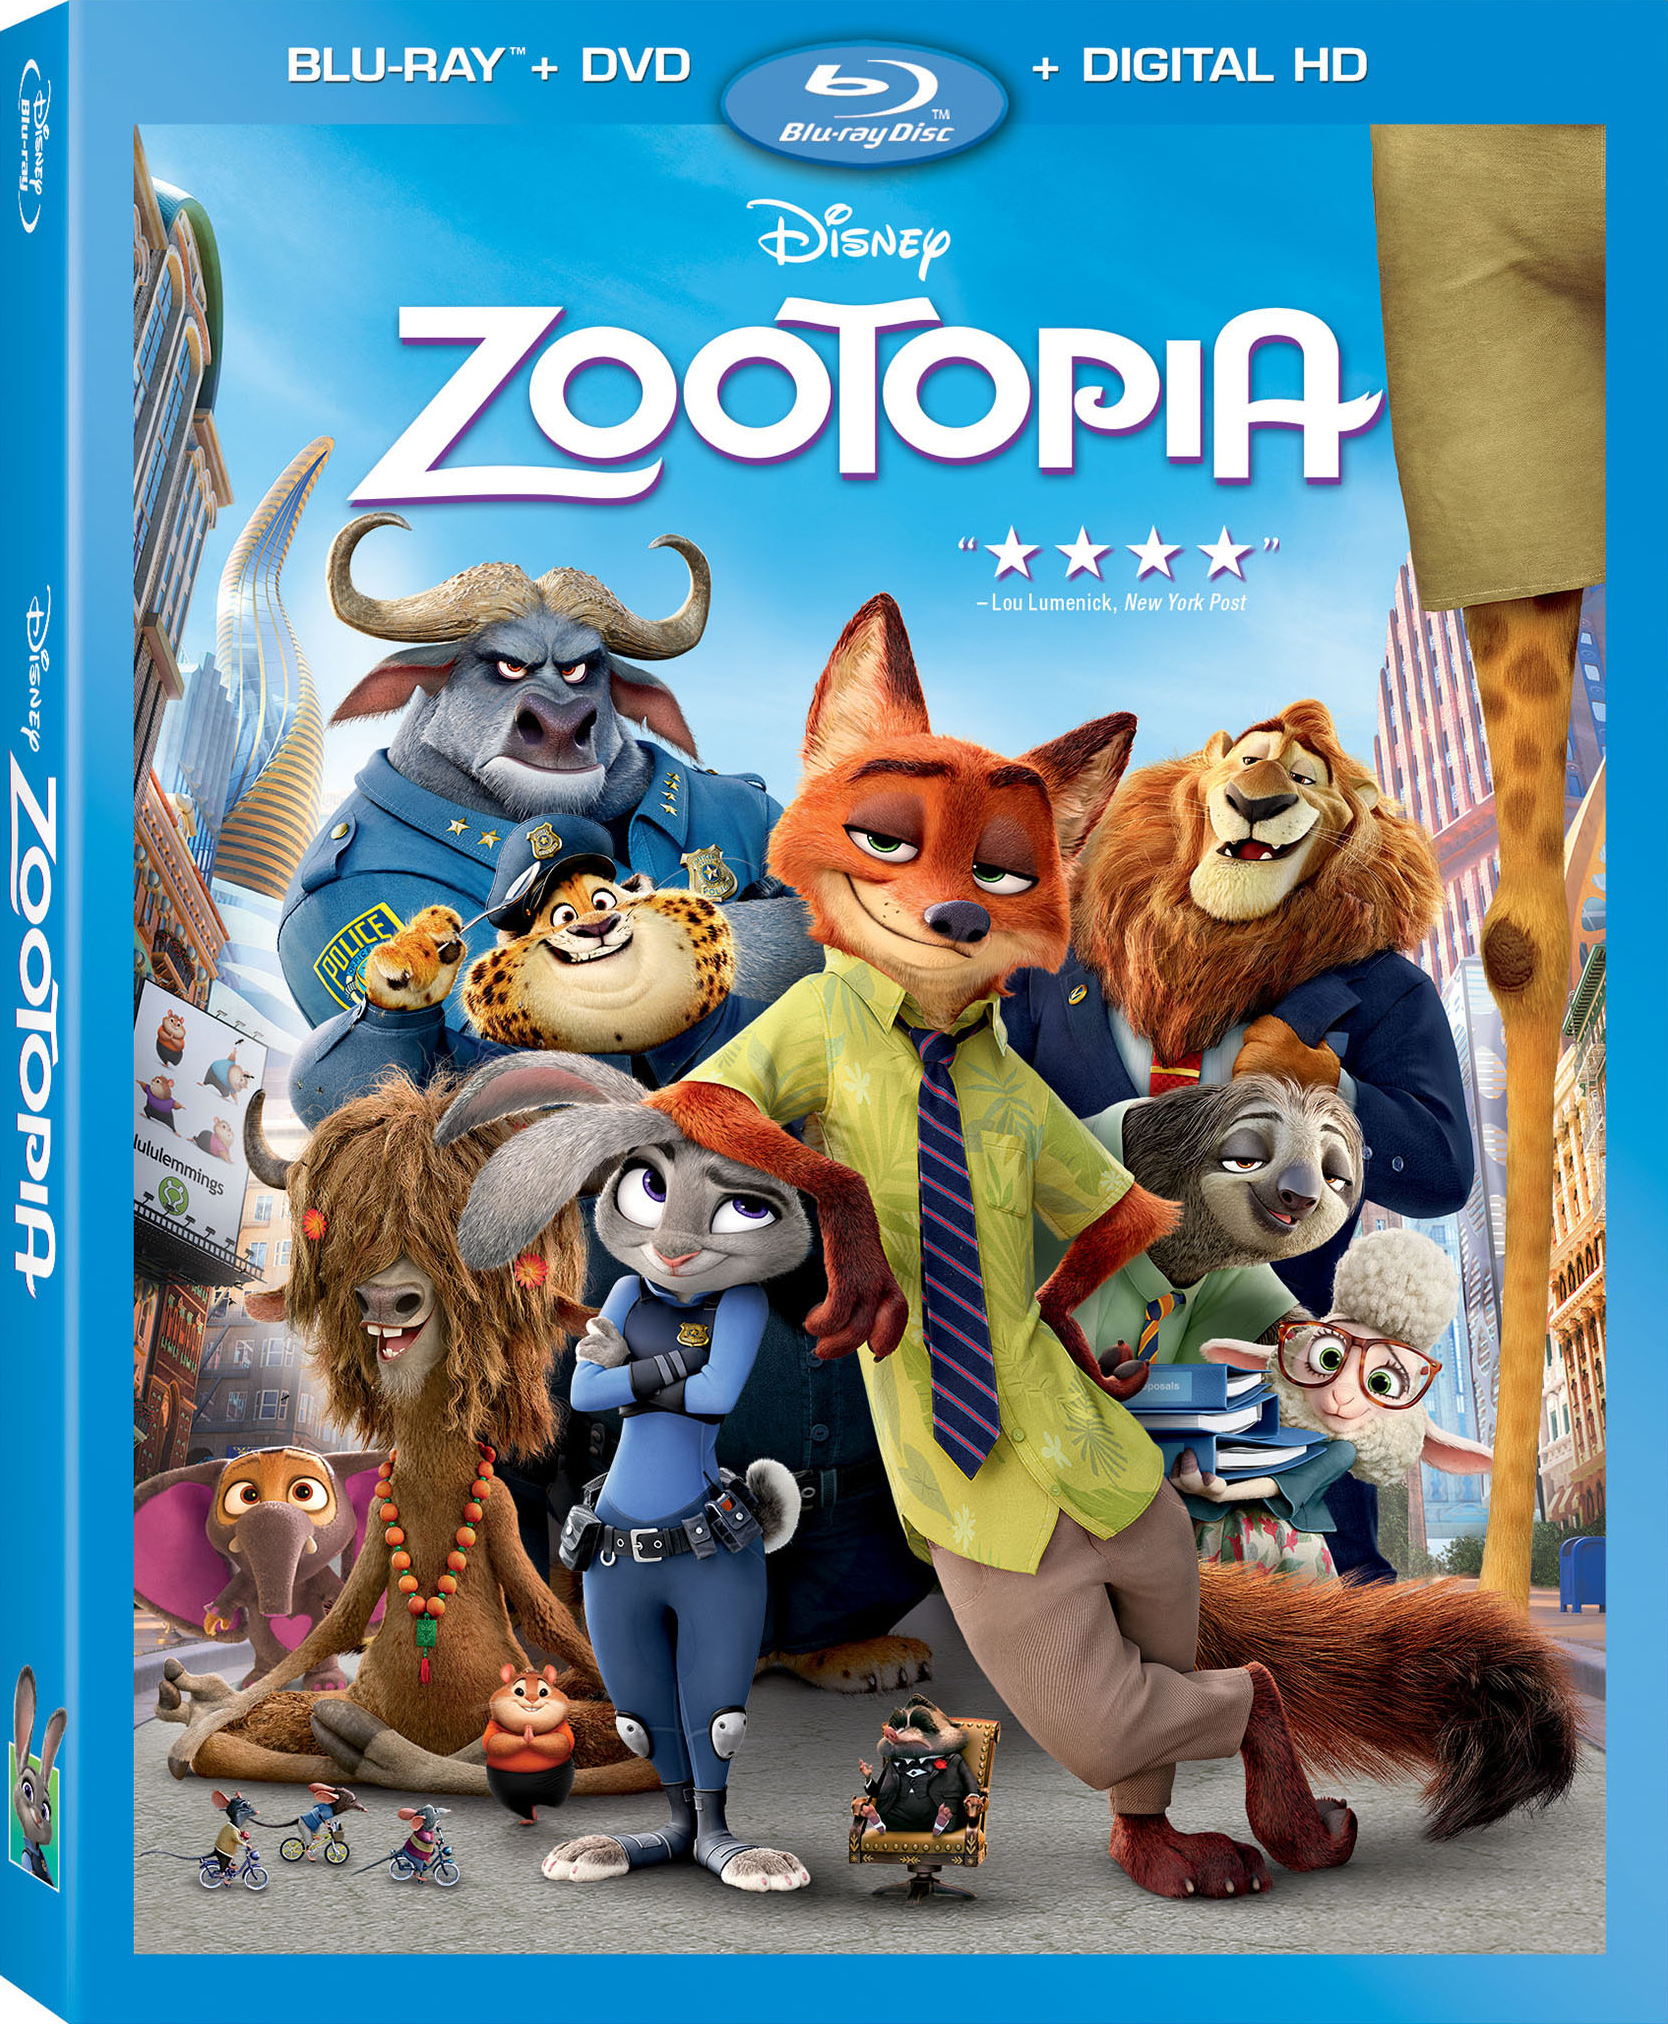 Disney Zootopia is not out on Blu-ray and DVD!